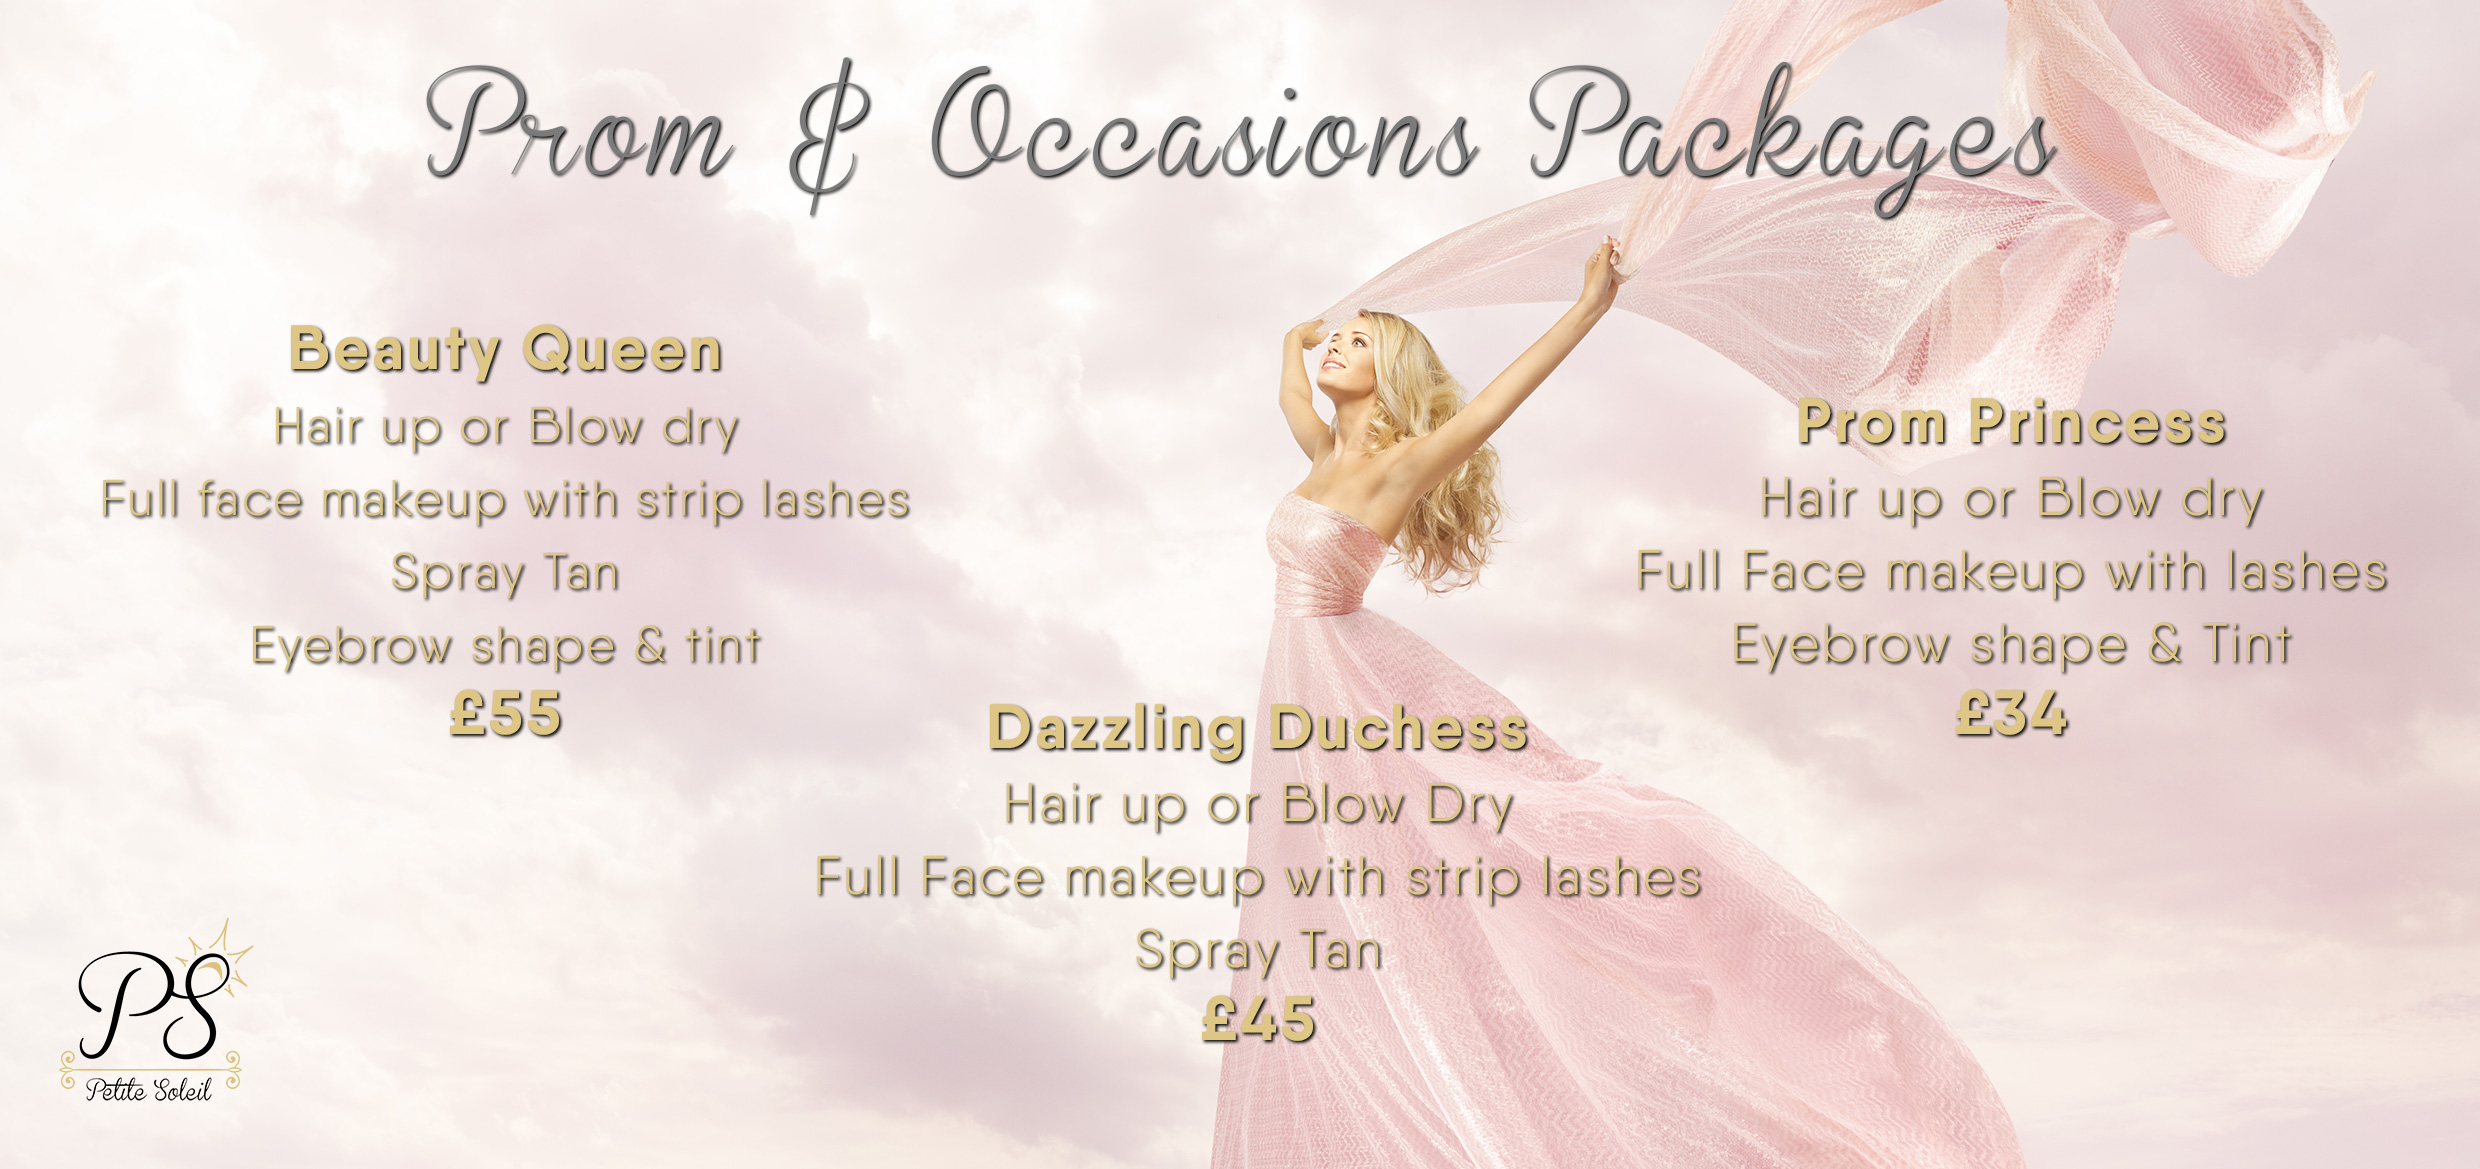 hair and beauty packages / offers